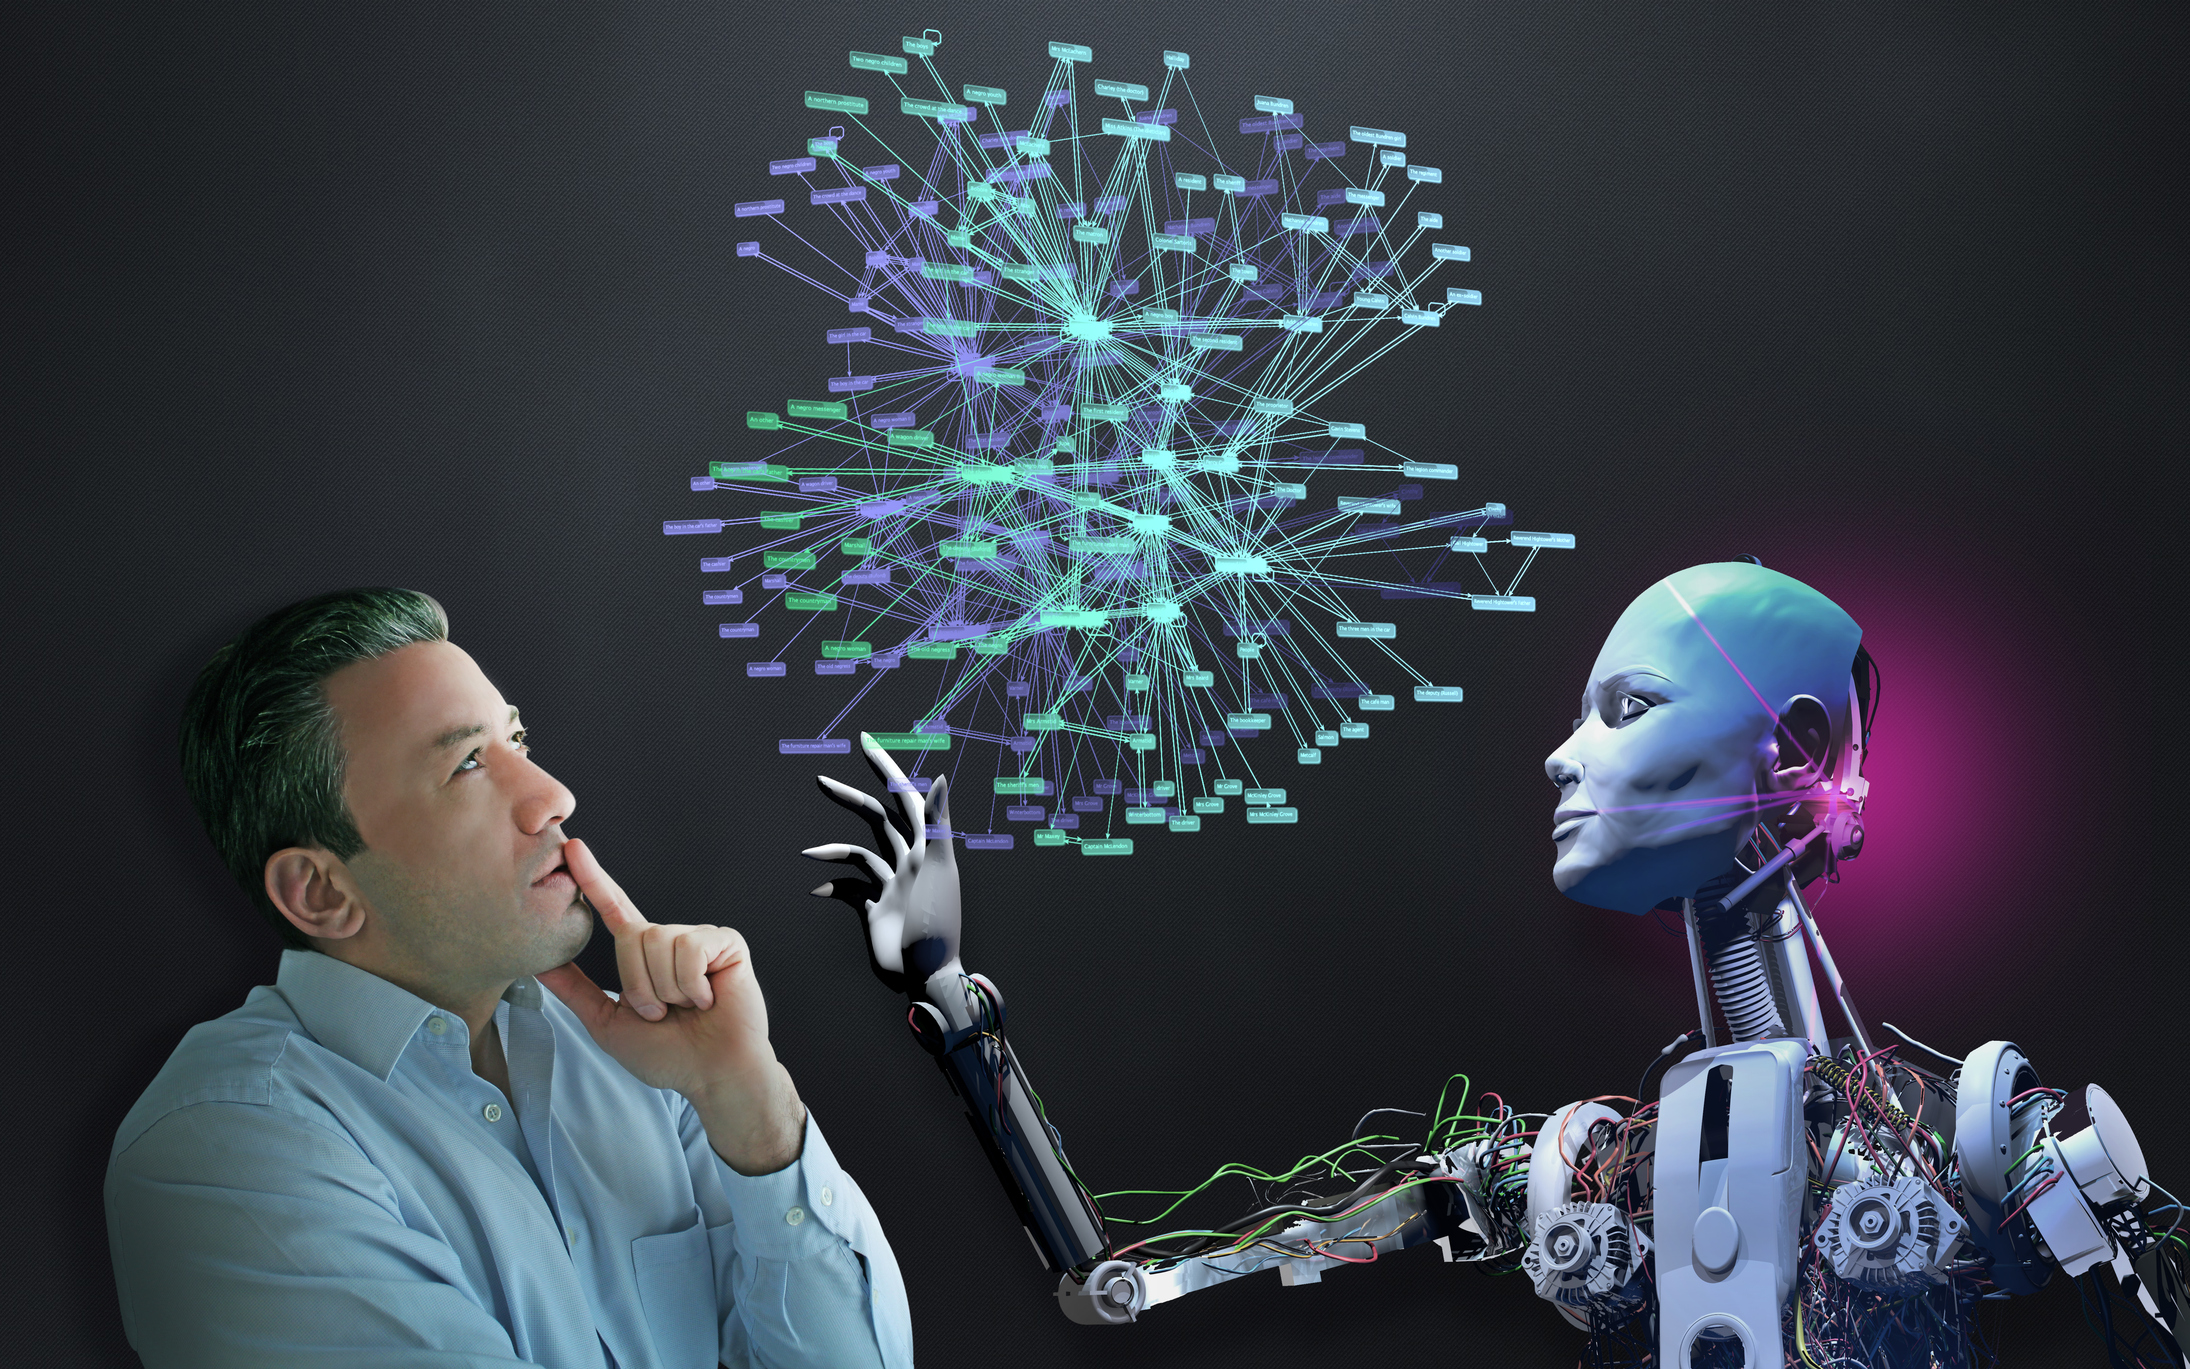 Norbert Wiener invented the field of cybernetics inspiring a generation of scientists to think of computer technology as a means to extend human capabilities